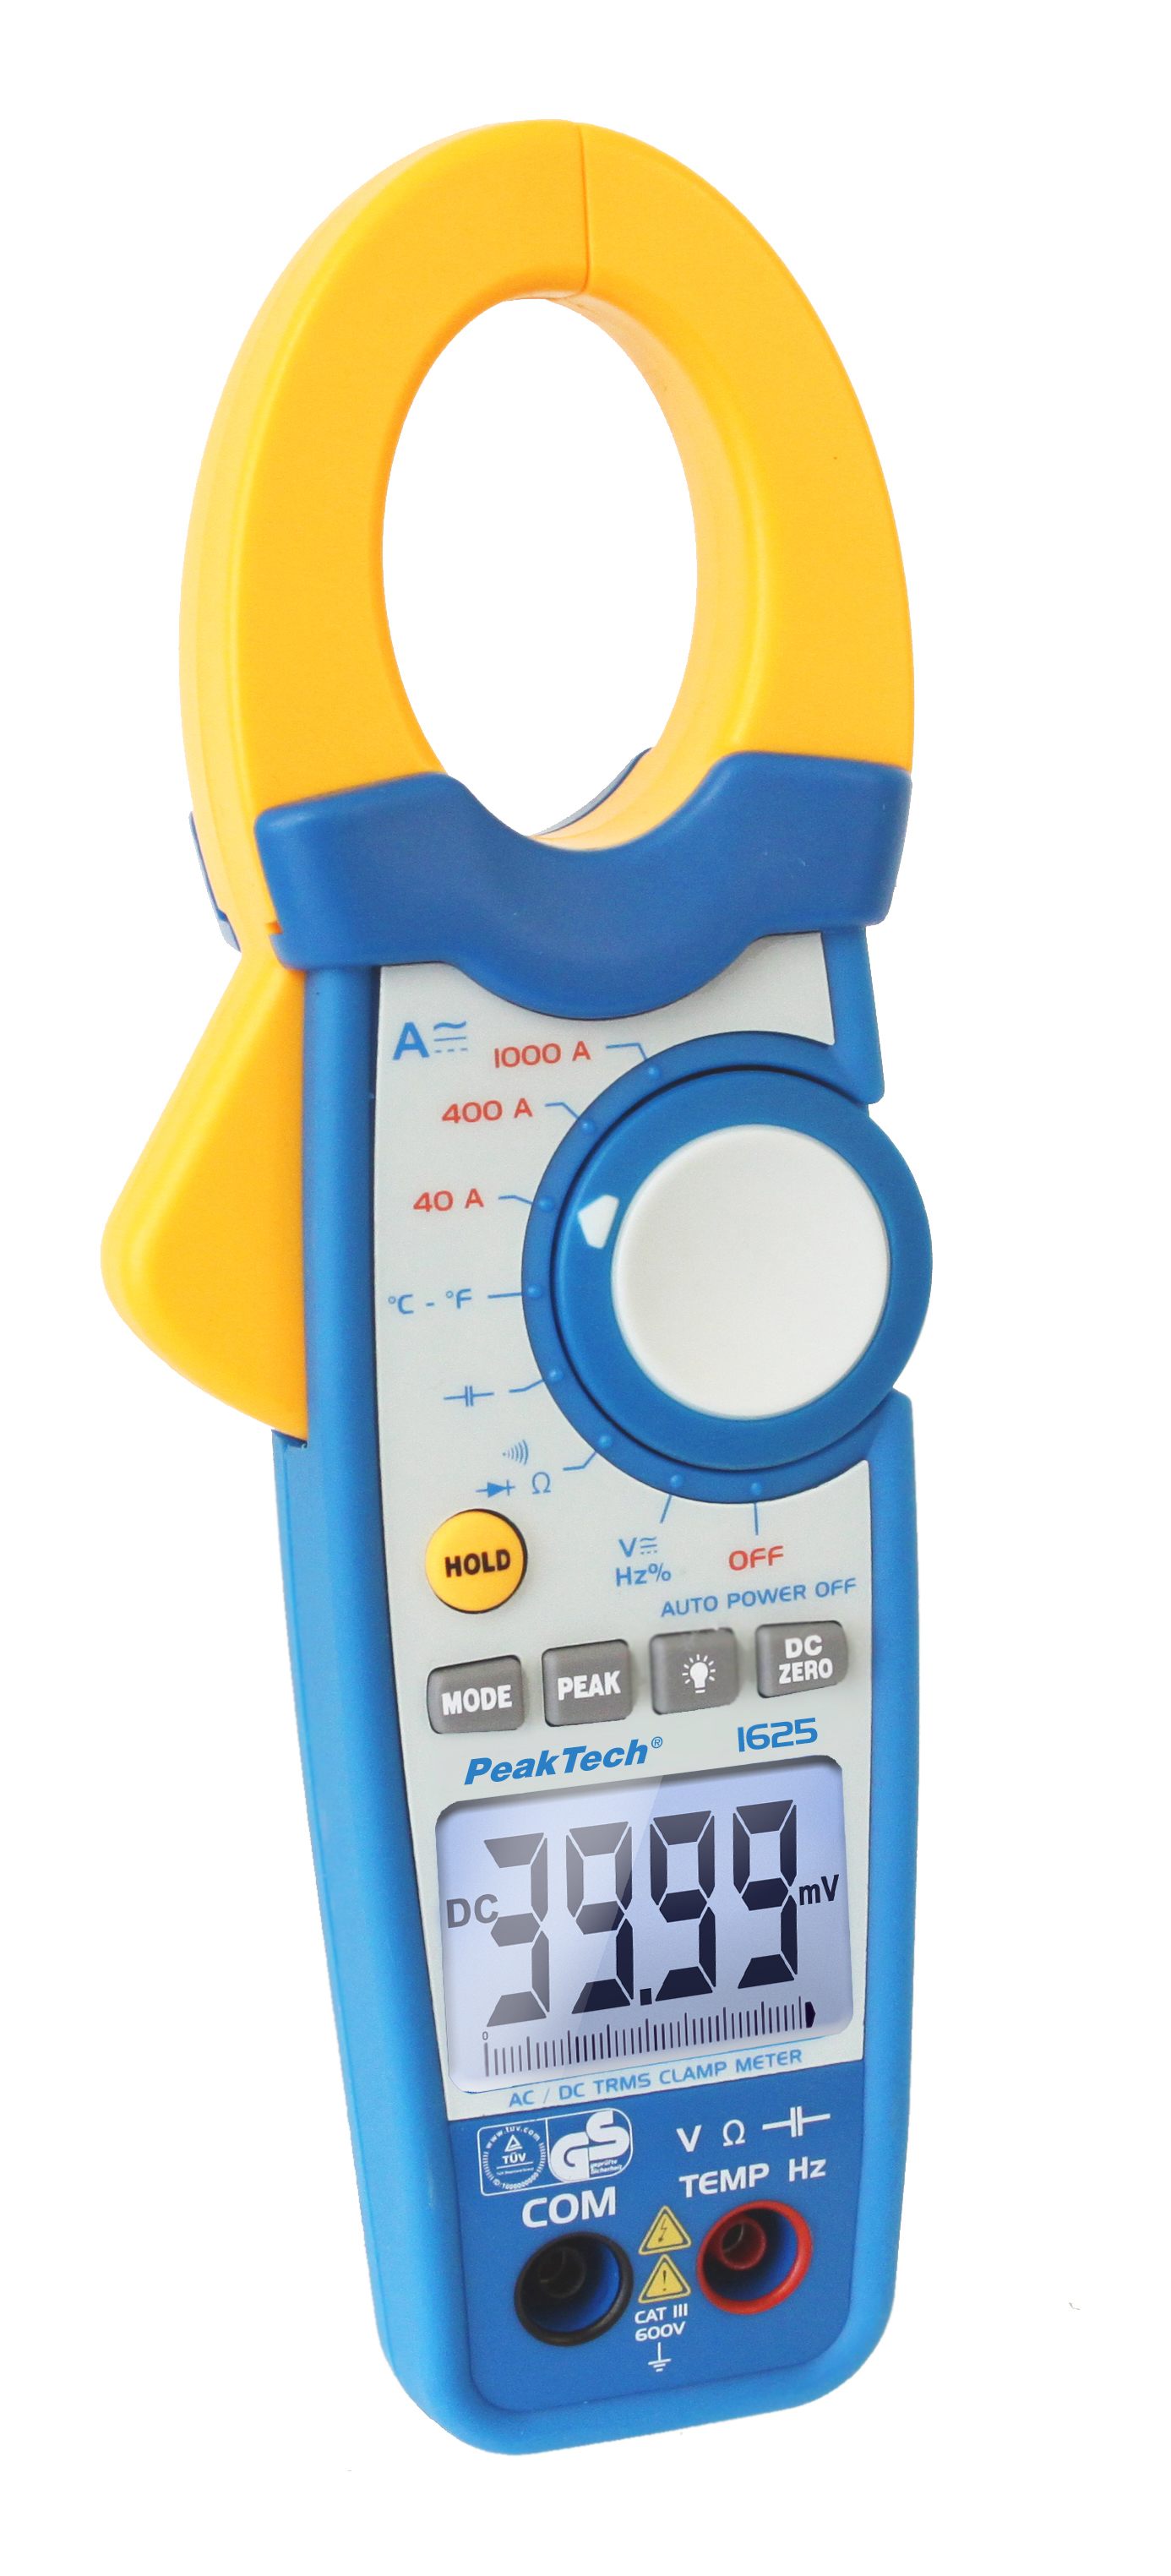 «PeakTech® P 1625» TrueRMS clamp meter 4,000 counts 1000 A AC/DC